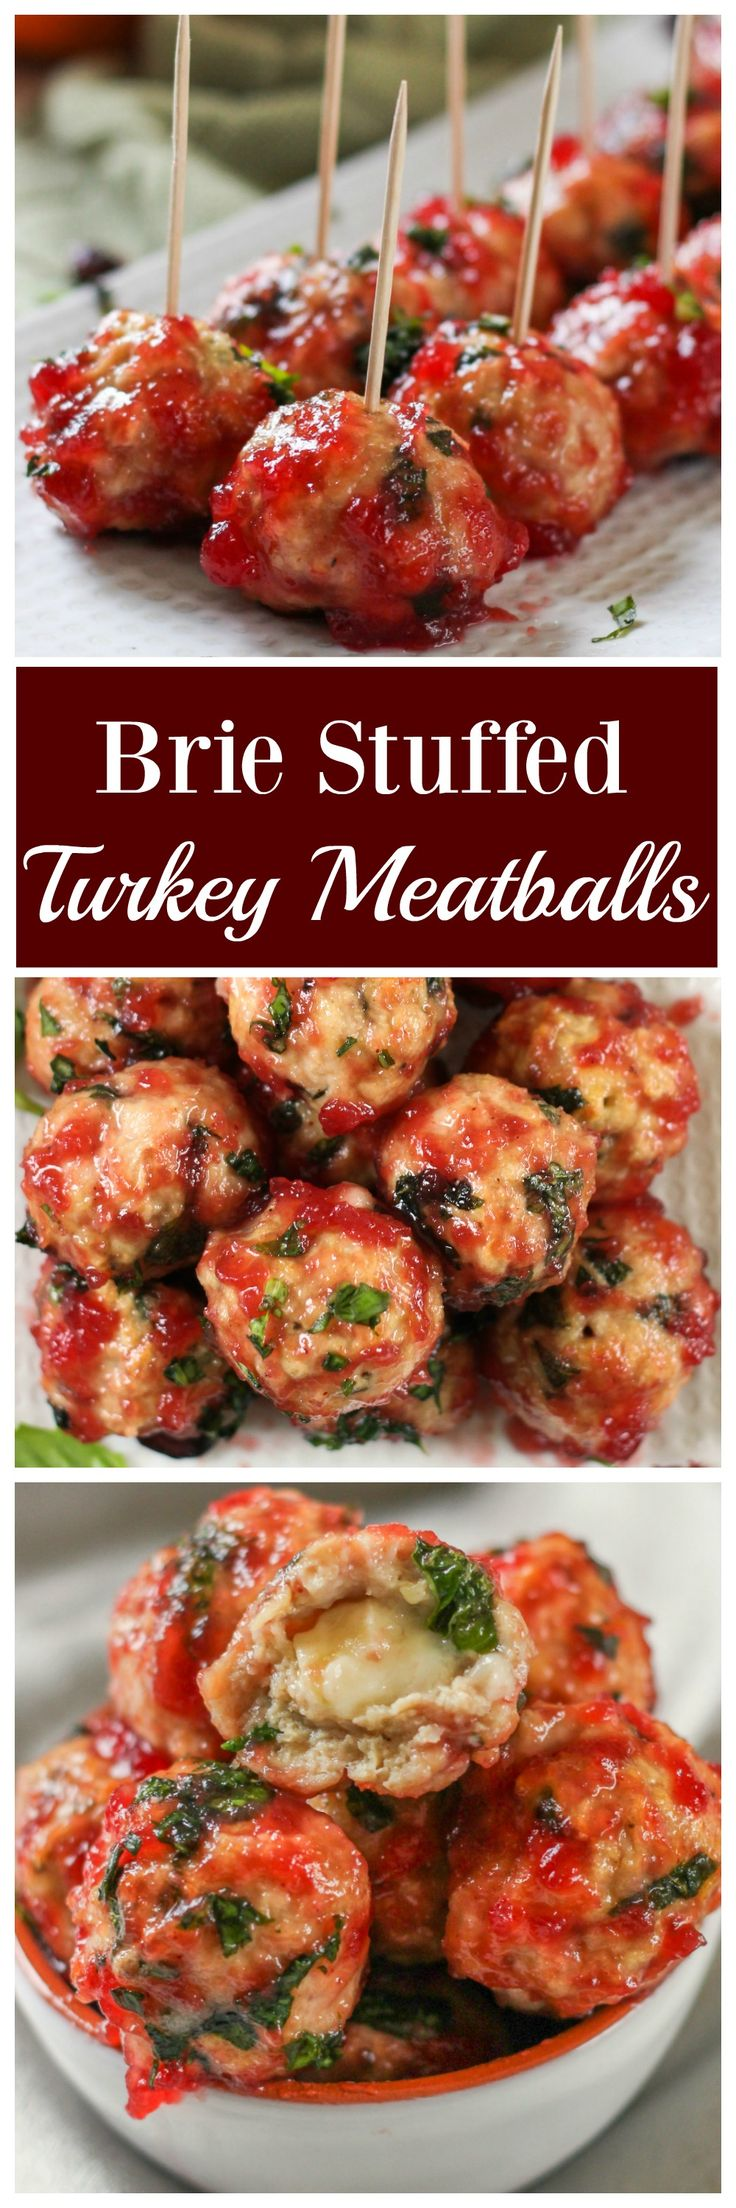 Brie Stuffed Turkey Meatballs w/ Cranberry Wine Sauce